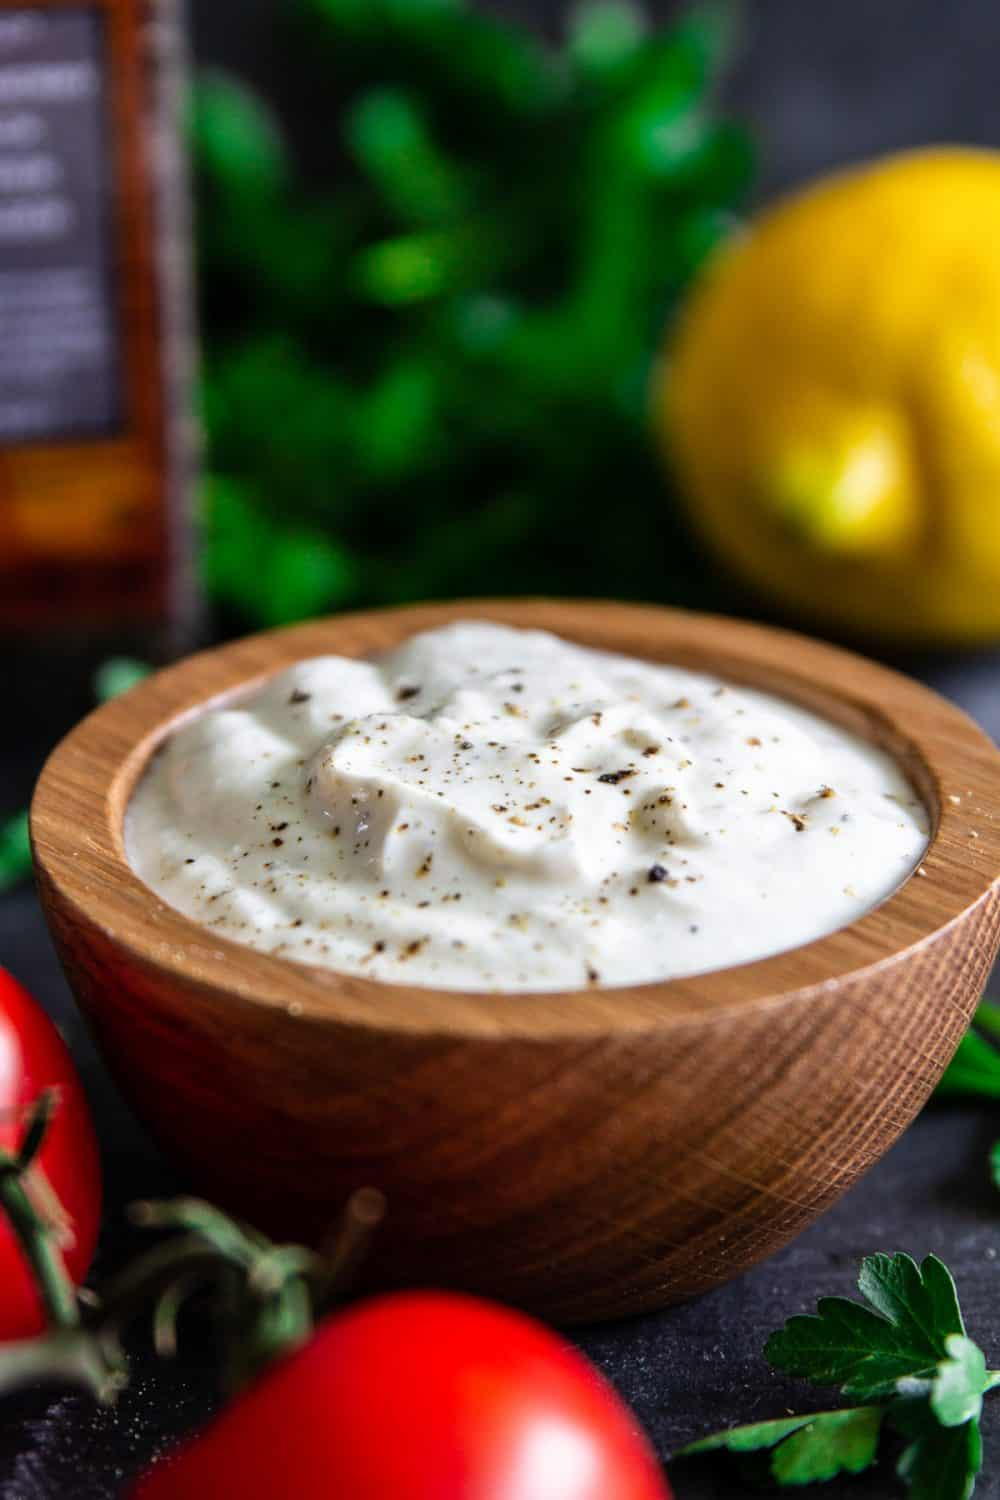 Creamy Greek Yogurt sauce with pepper sprinkled on top and a lemon in the background